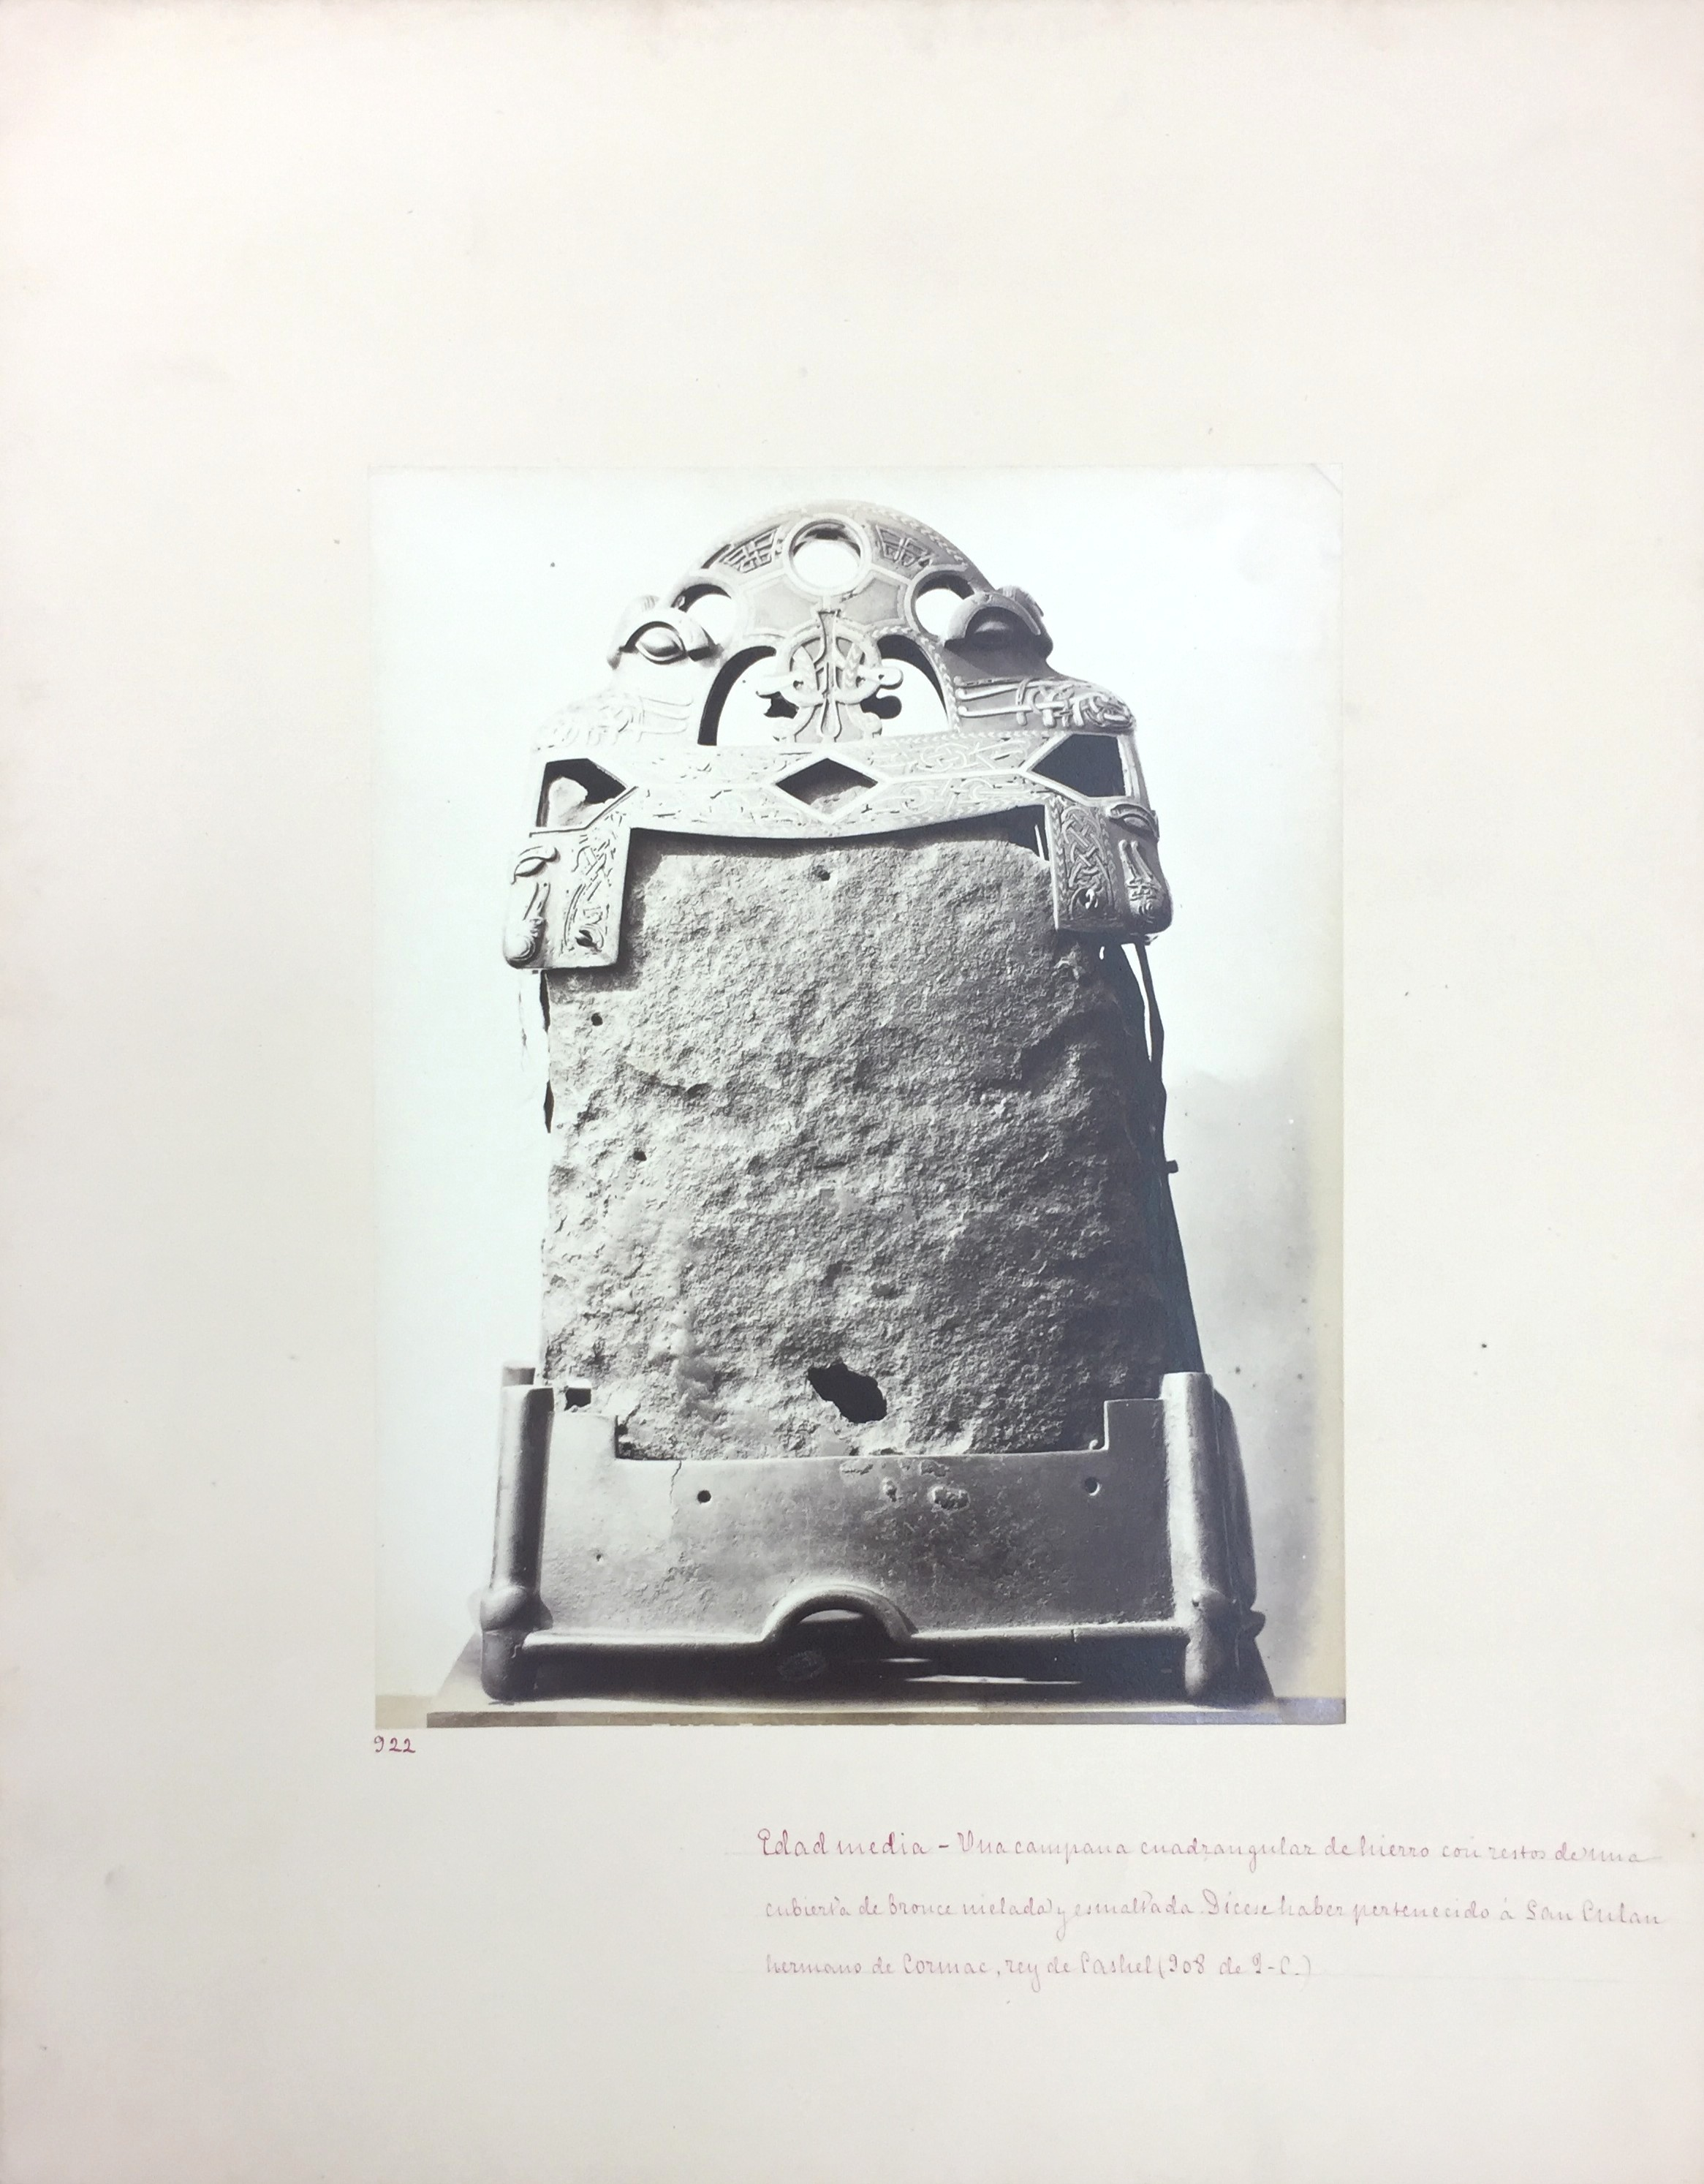 Medieval Iron Bell, 12th C, No. 922, Antiquities of Britain, British Museum , 1872, Photographed by Stephen Thompson, Vintage albumen print, Photograph: 20 x 26 cm, Mount board: 45.5 cm x 35.5 cm